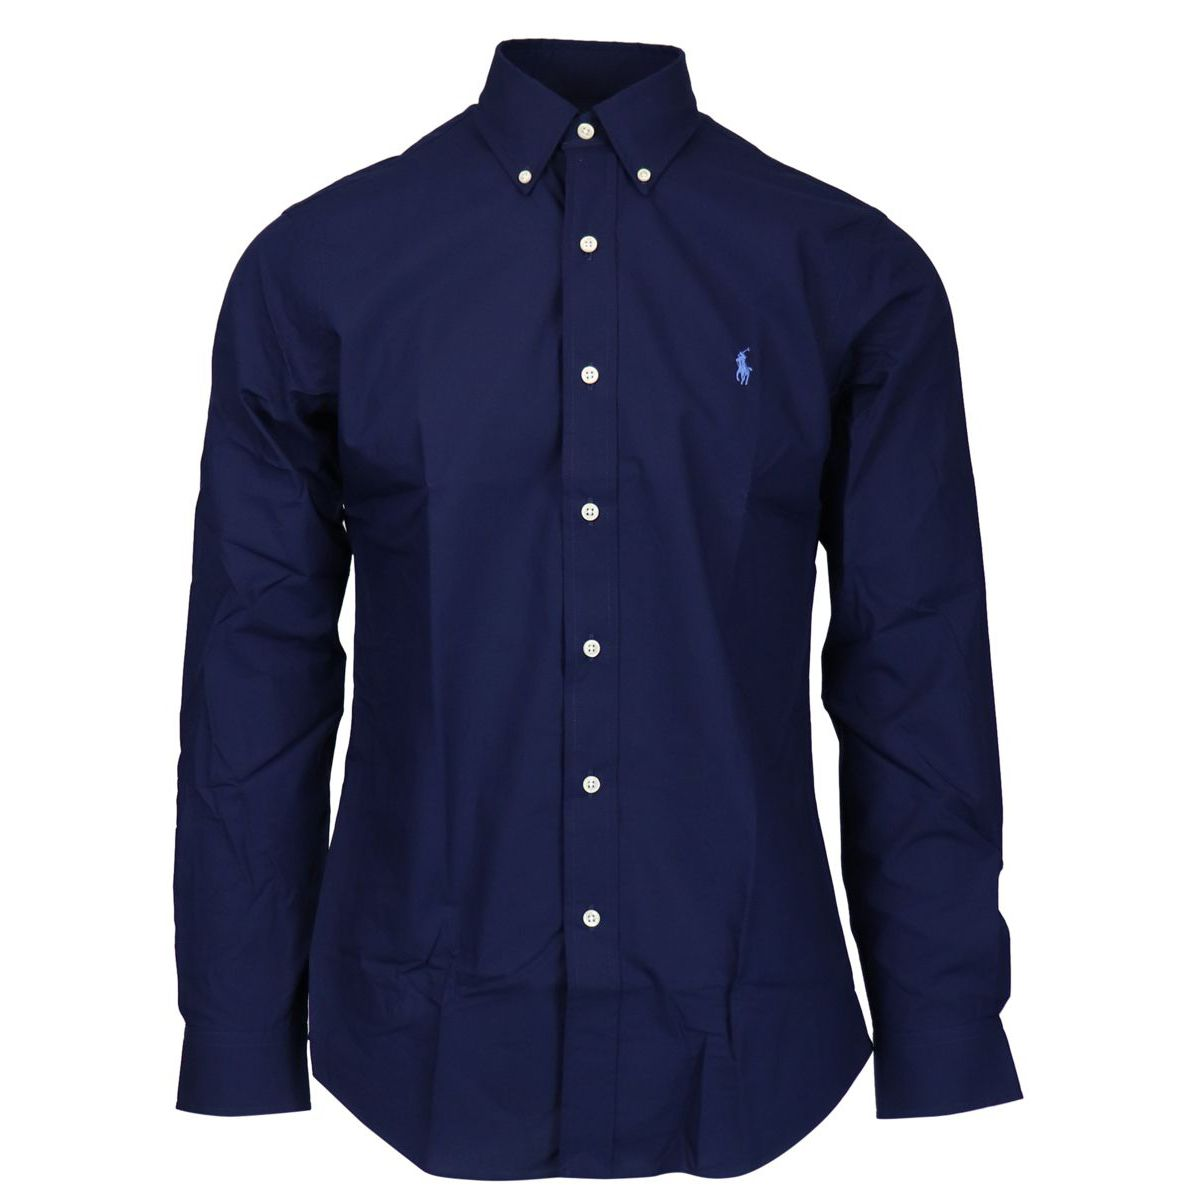 Custom-fit button-down cotton shirt with logo Navy Polo Ralph Lauren